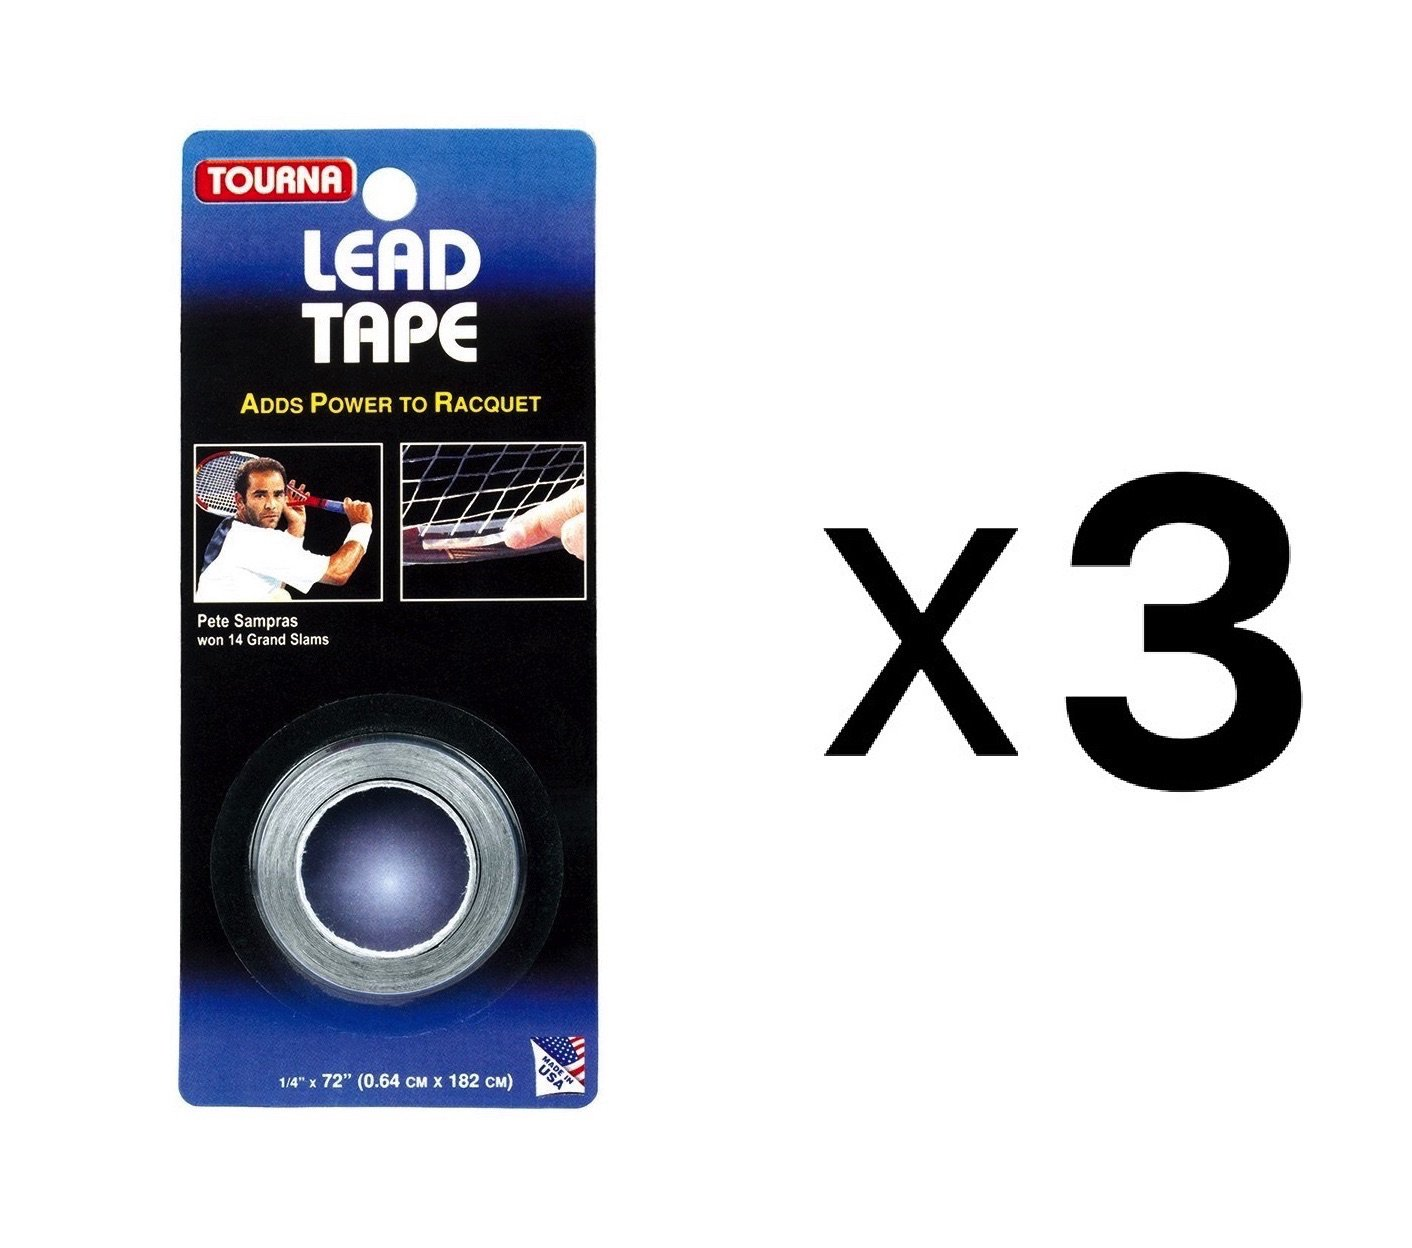 Tourna Lead Tape Tennis Racquet Racket Tape Golf Club 1/4'' X 72'' (3-Pack)